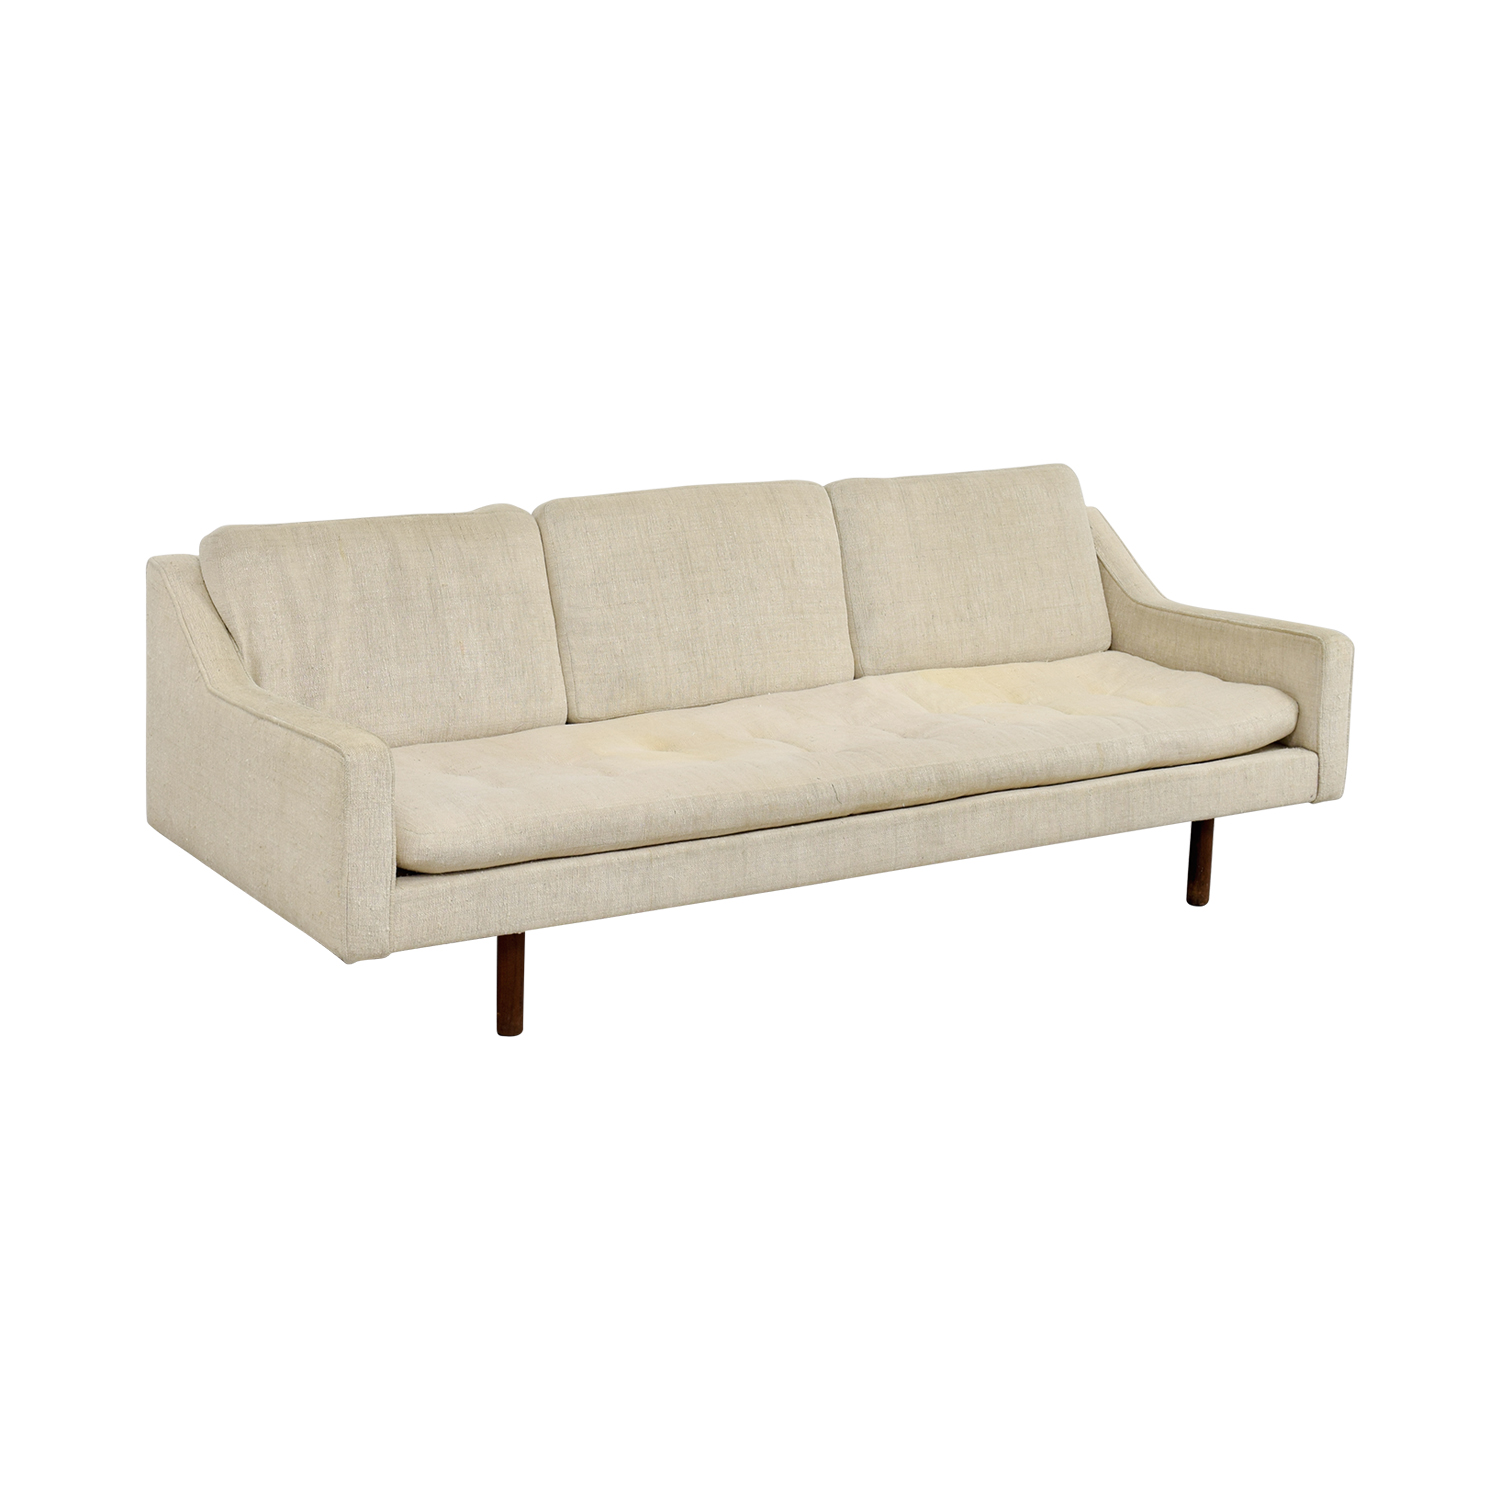 90 off vintage mid century white single cushion sofa for Classic loveseat